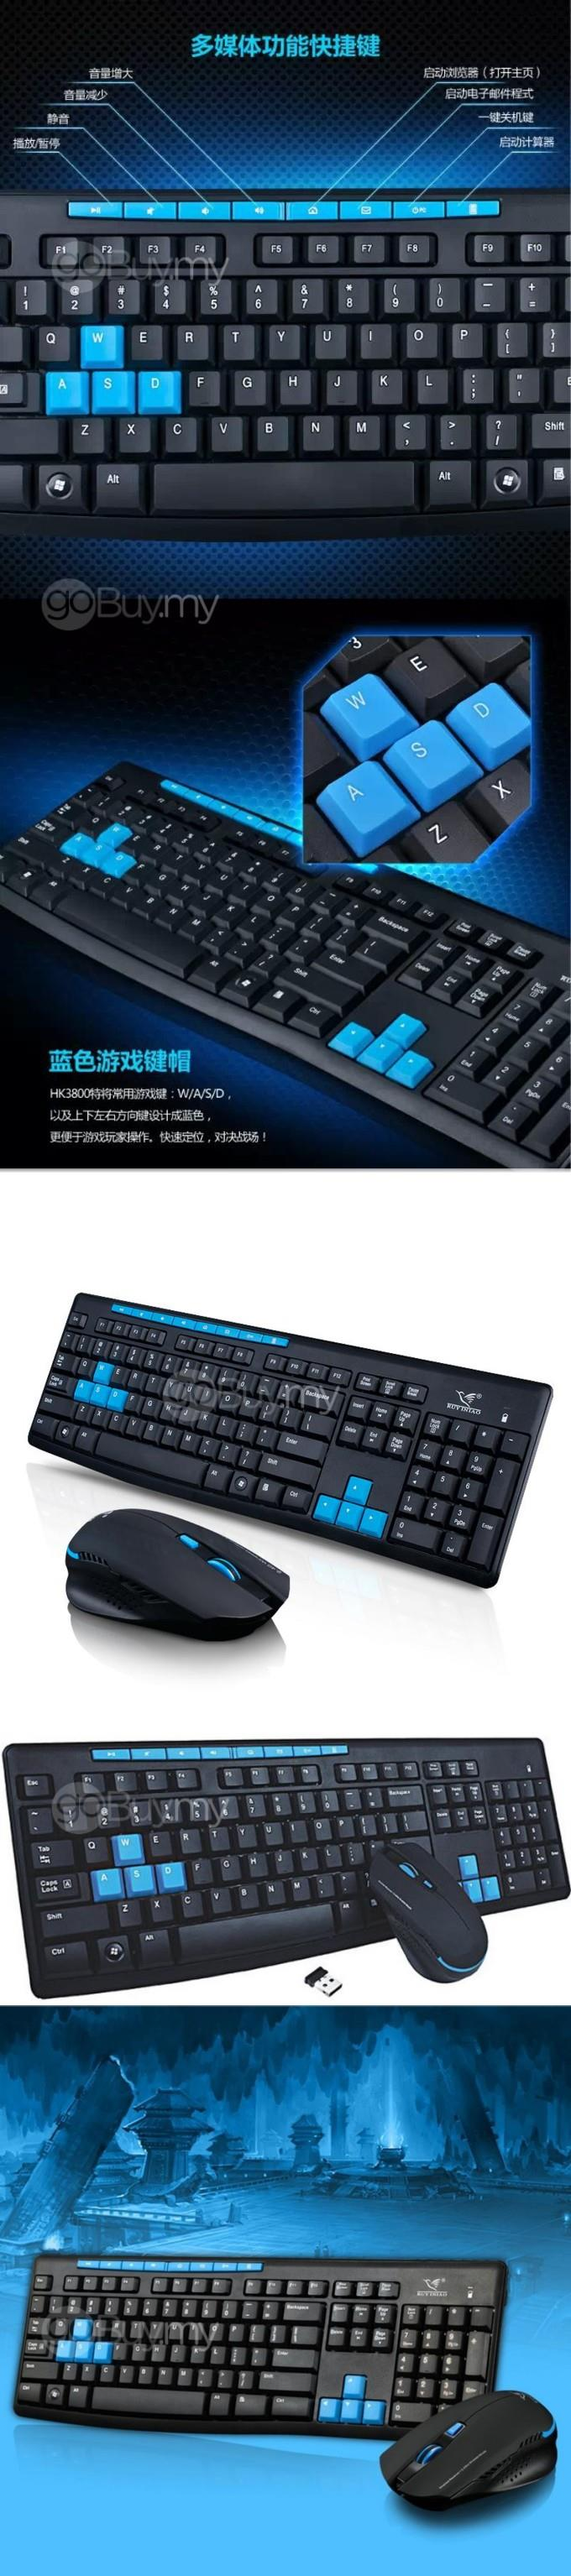 [RM66.90 ONLY] Wireless Mouse + Wireless Keyboard, Combo Set